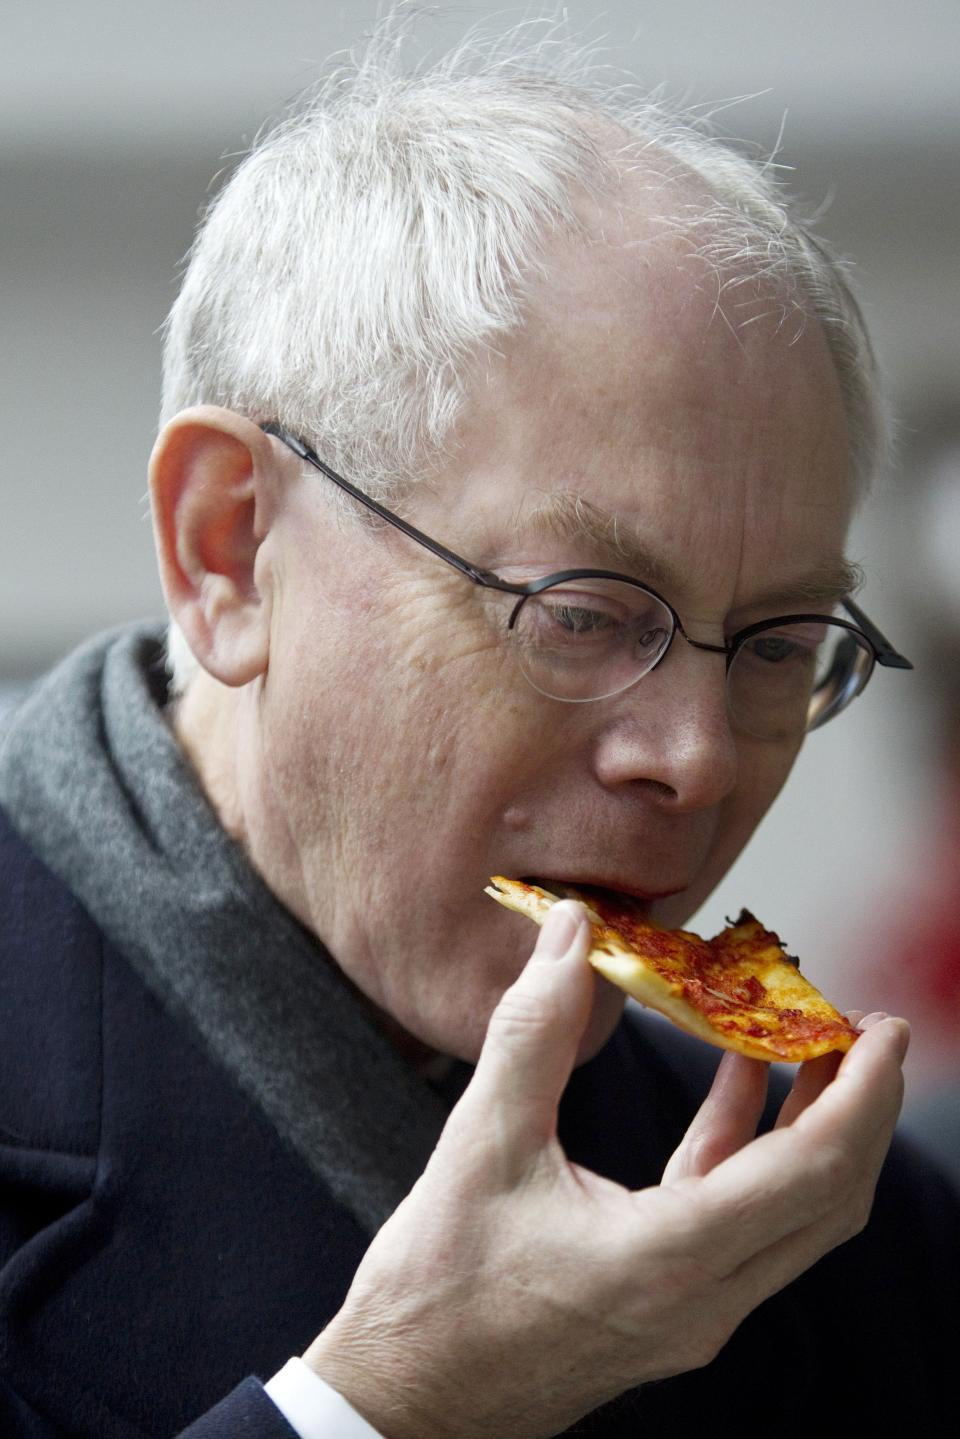 EU President Herman Van Rompuy tastes a slice of pizza during his visit at an EU-funded psychiatric clinic in Beijing Tuesday, Feb. 14, 2012. (AP Photo/Alexander F. Yuan)